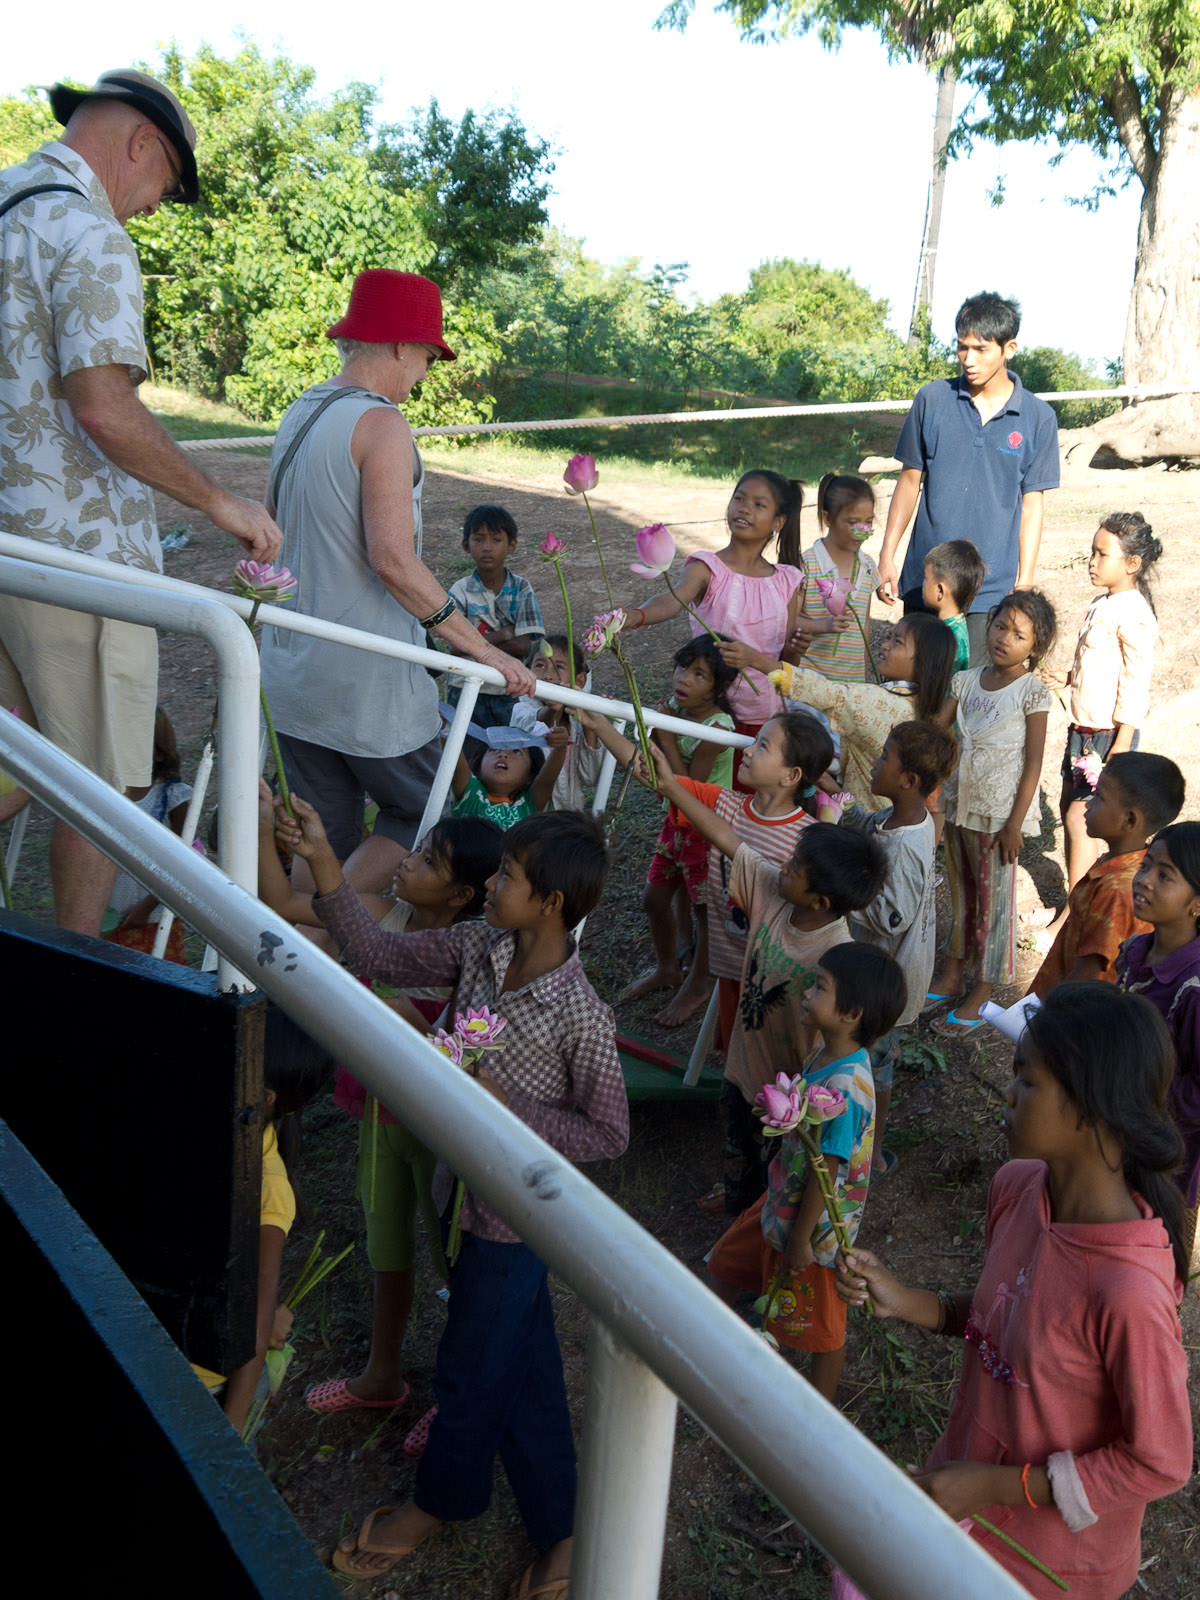 Disembarking the ship - greeted by village kids